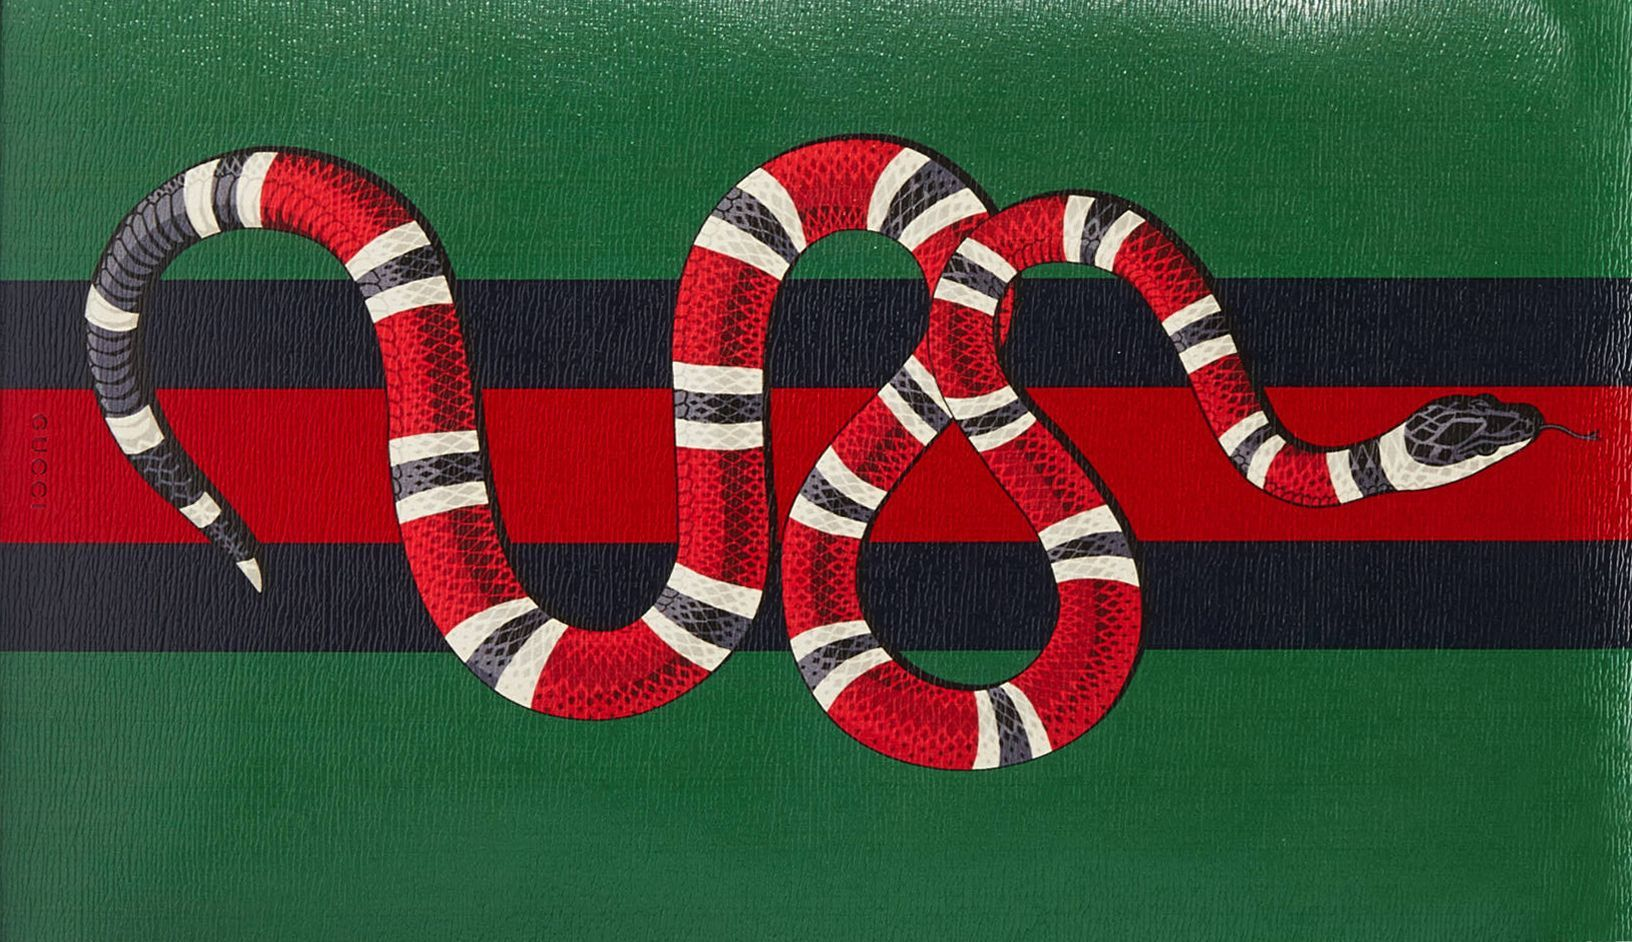 Related Image Snake Wallpaper Gucci Wallpaper Iphone Hypebeast Wallpaper